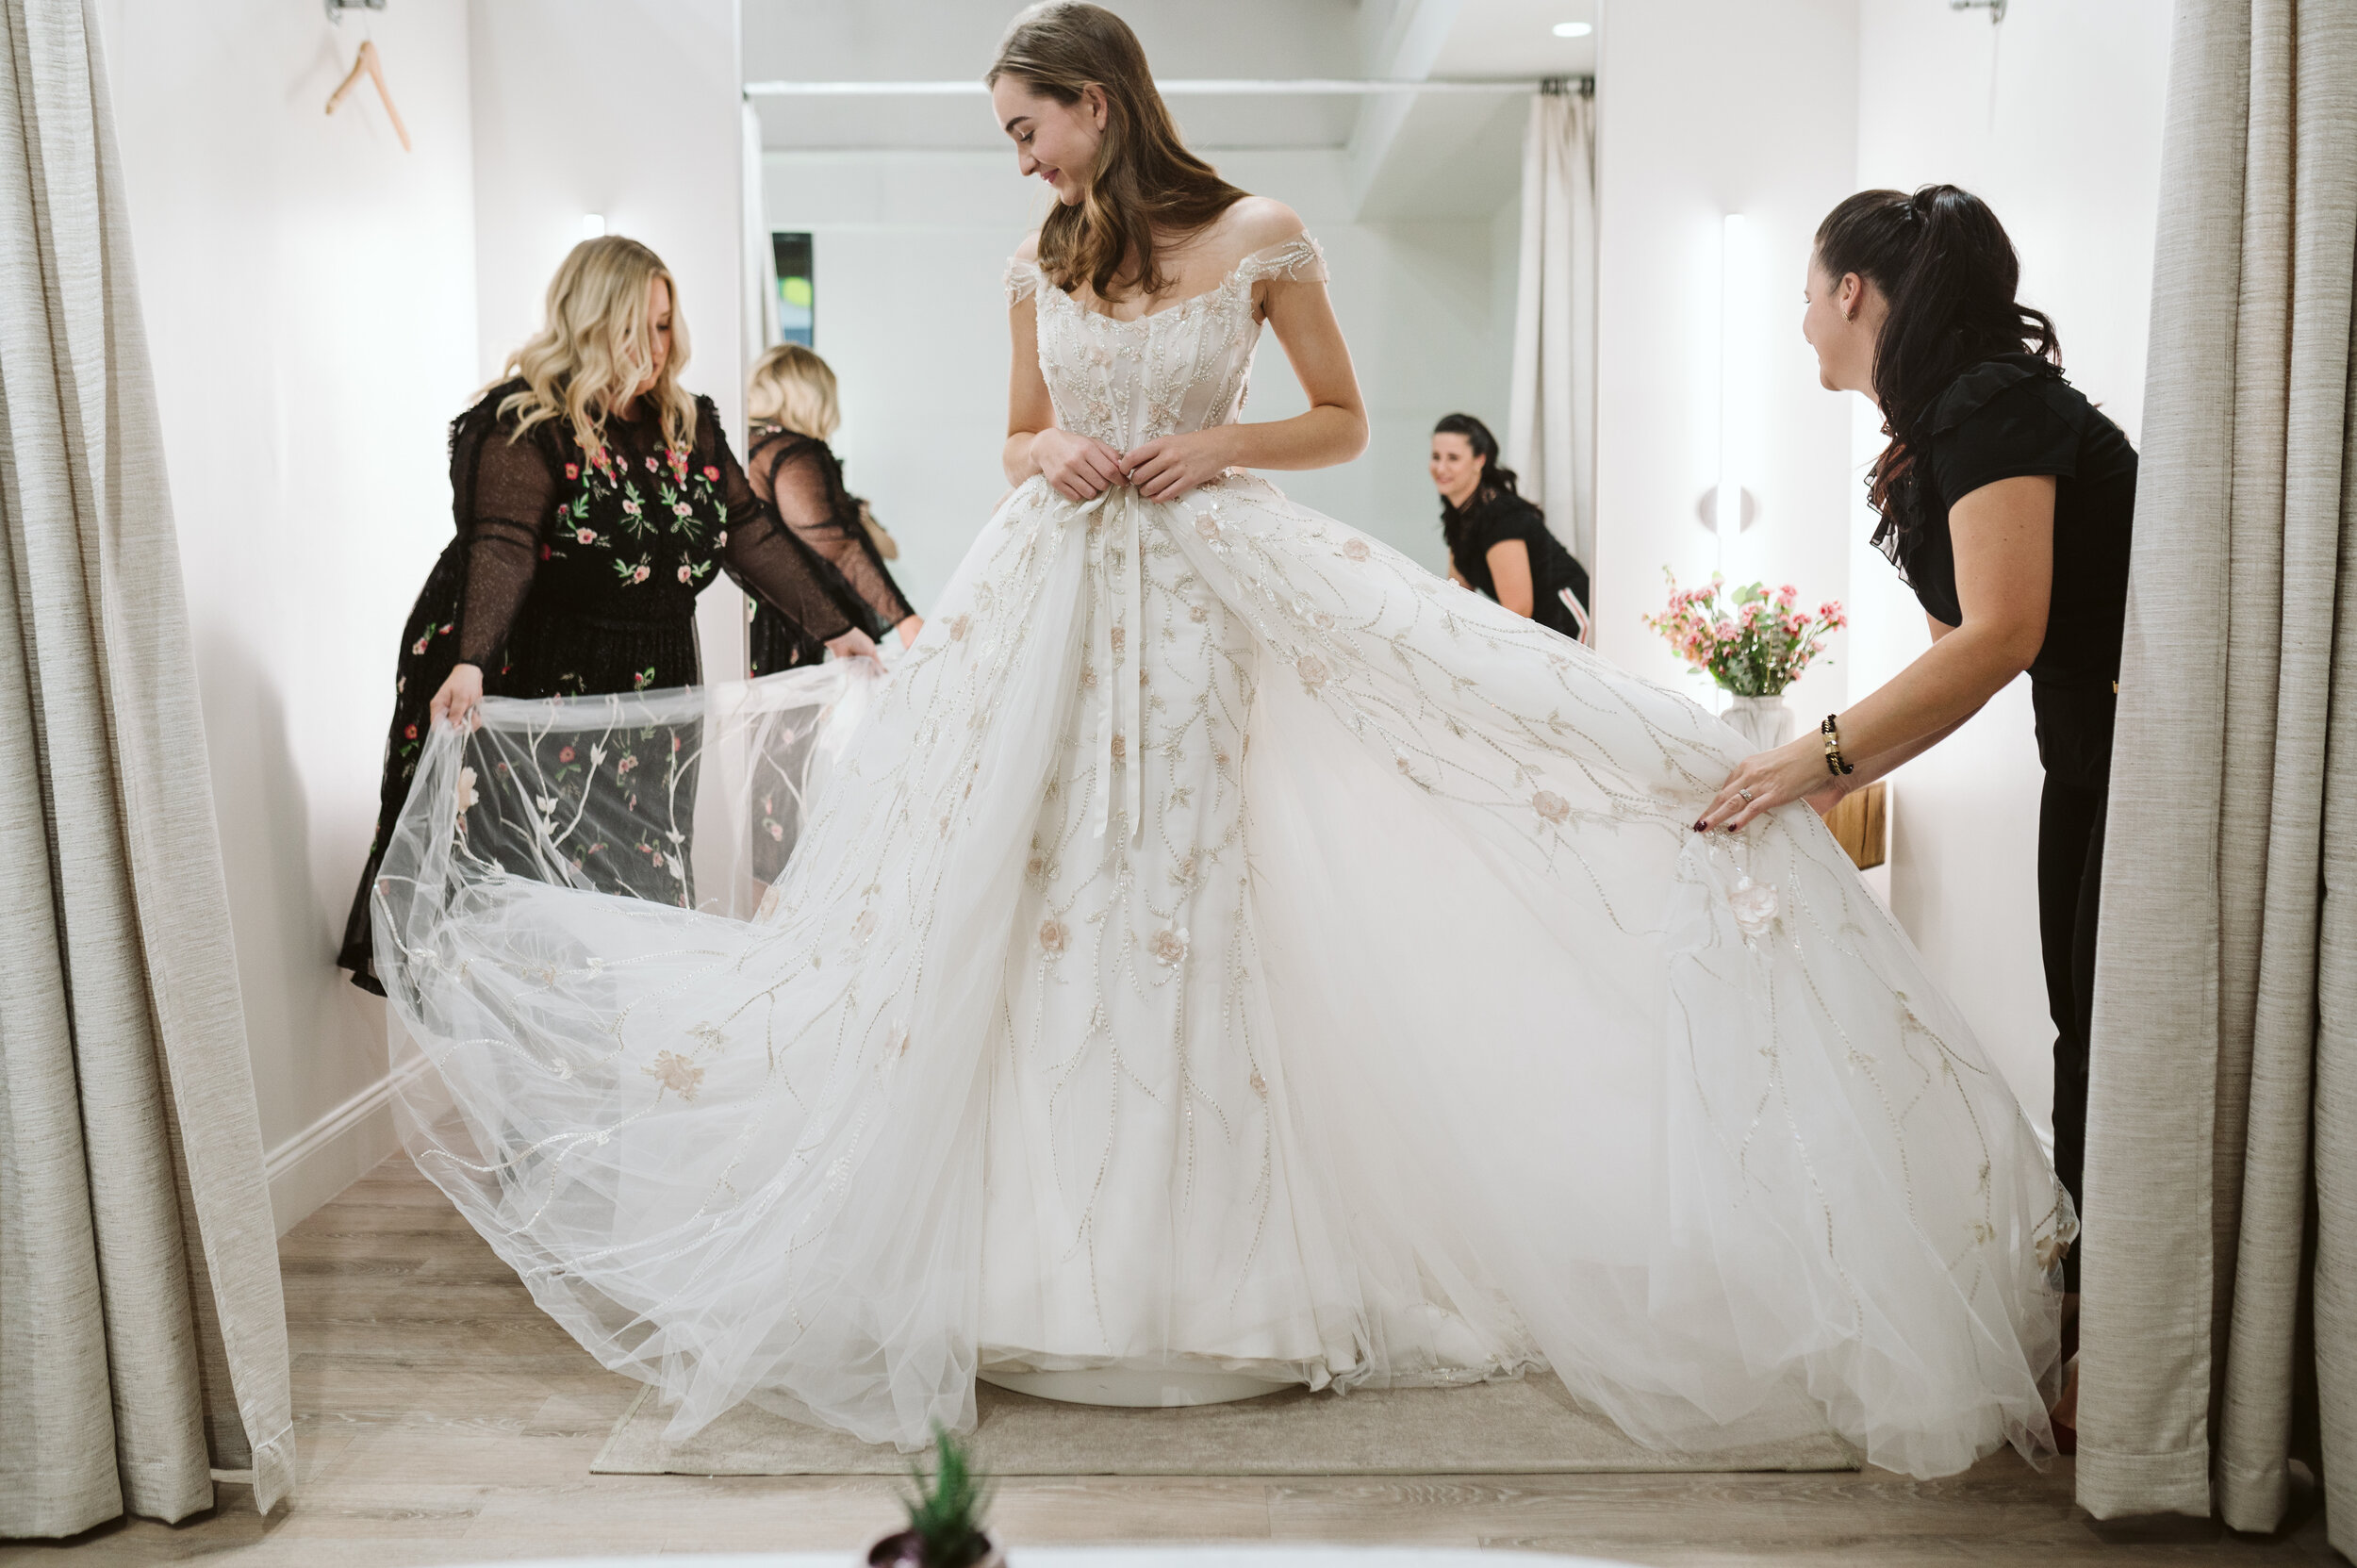 The Bridal Finery - Wedding Dress Appointment in Winter Park, FL